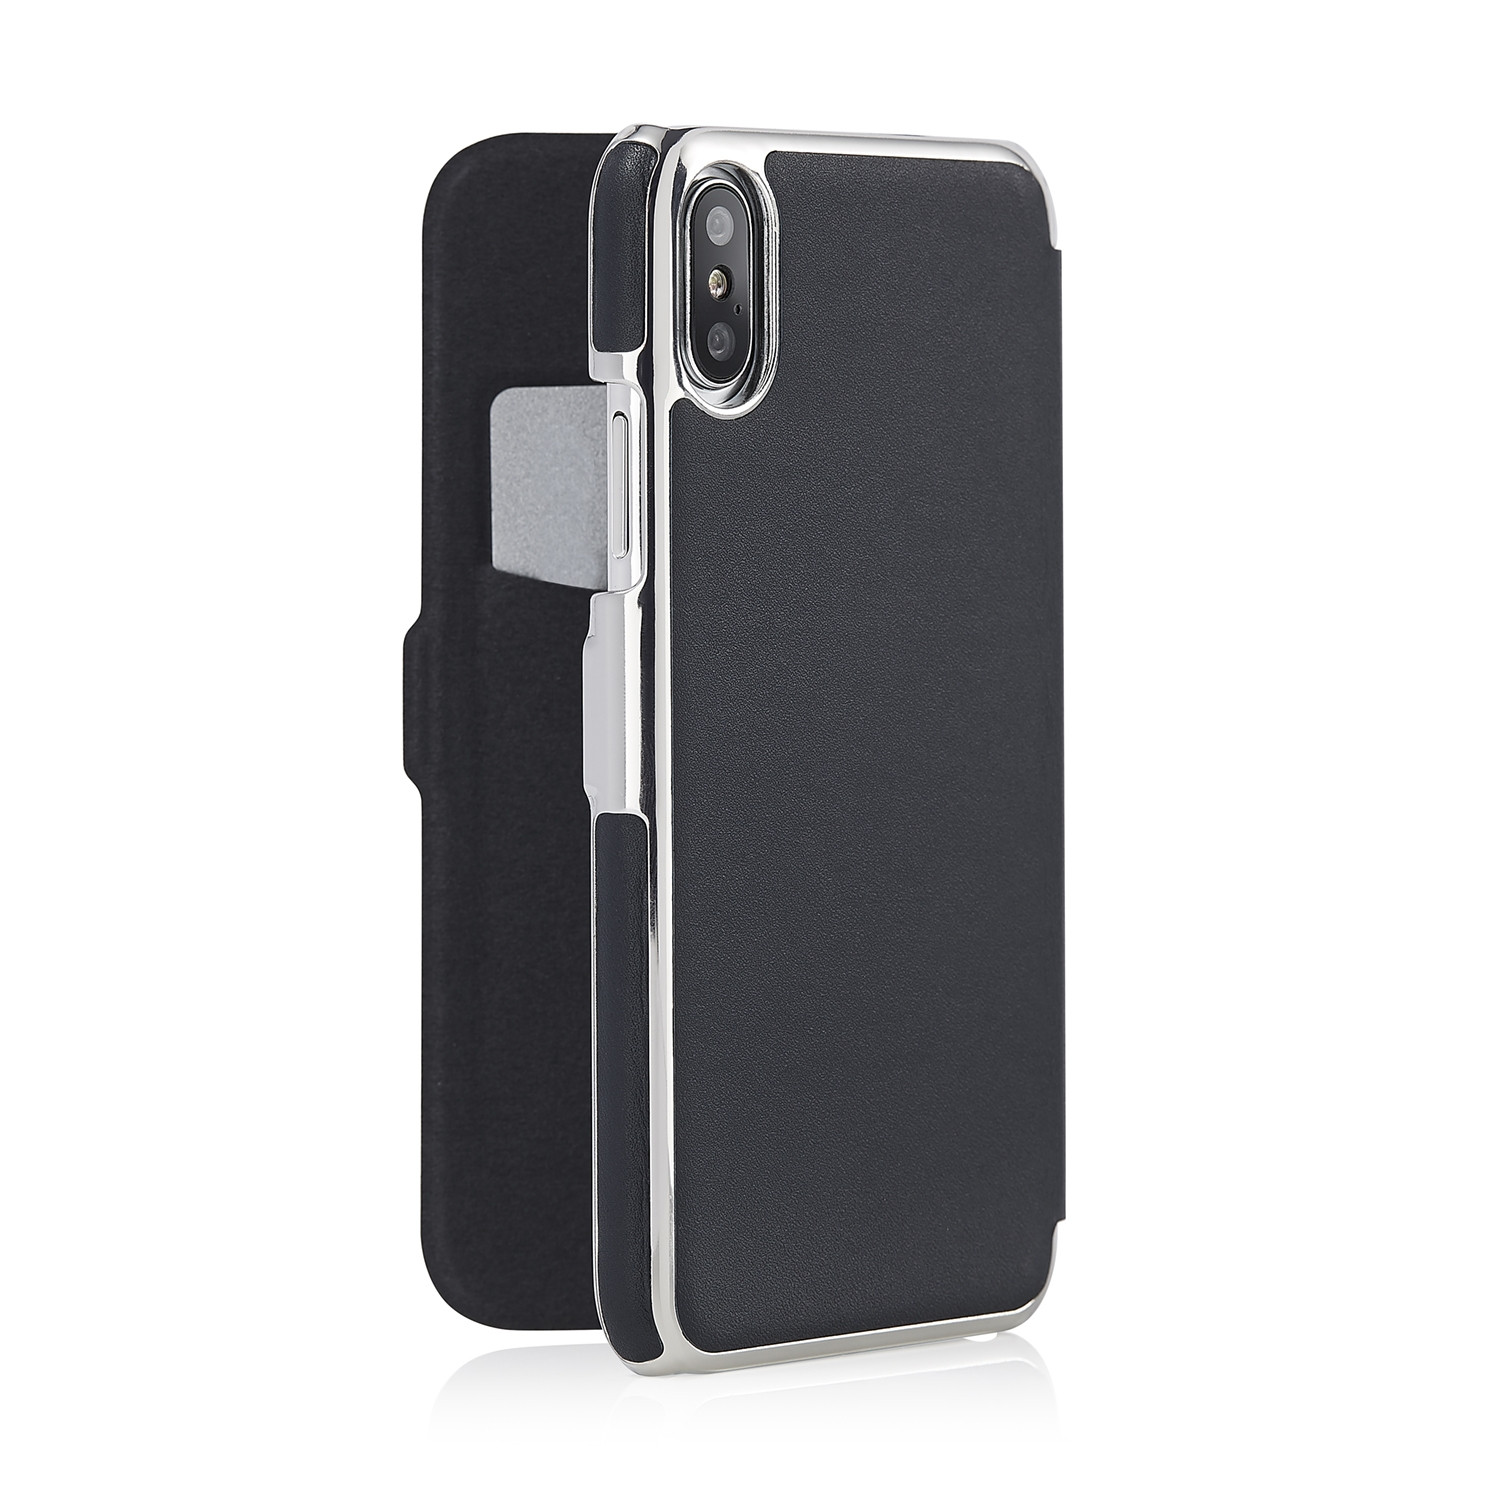 promo code f25c0 34b7e iPhone X Slim Wallet - Navy